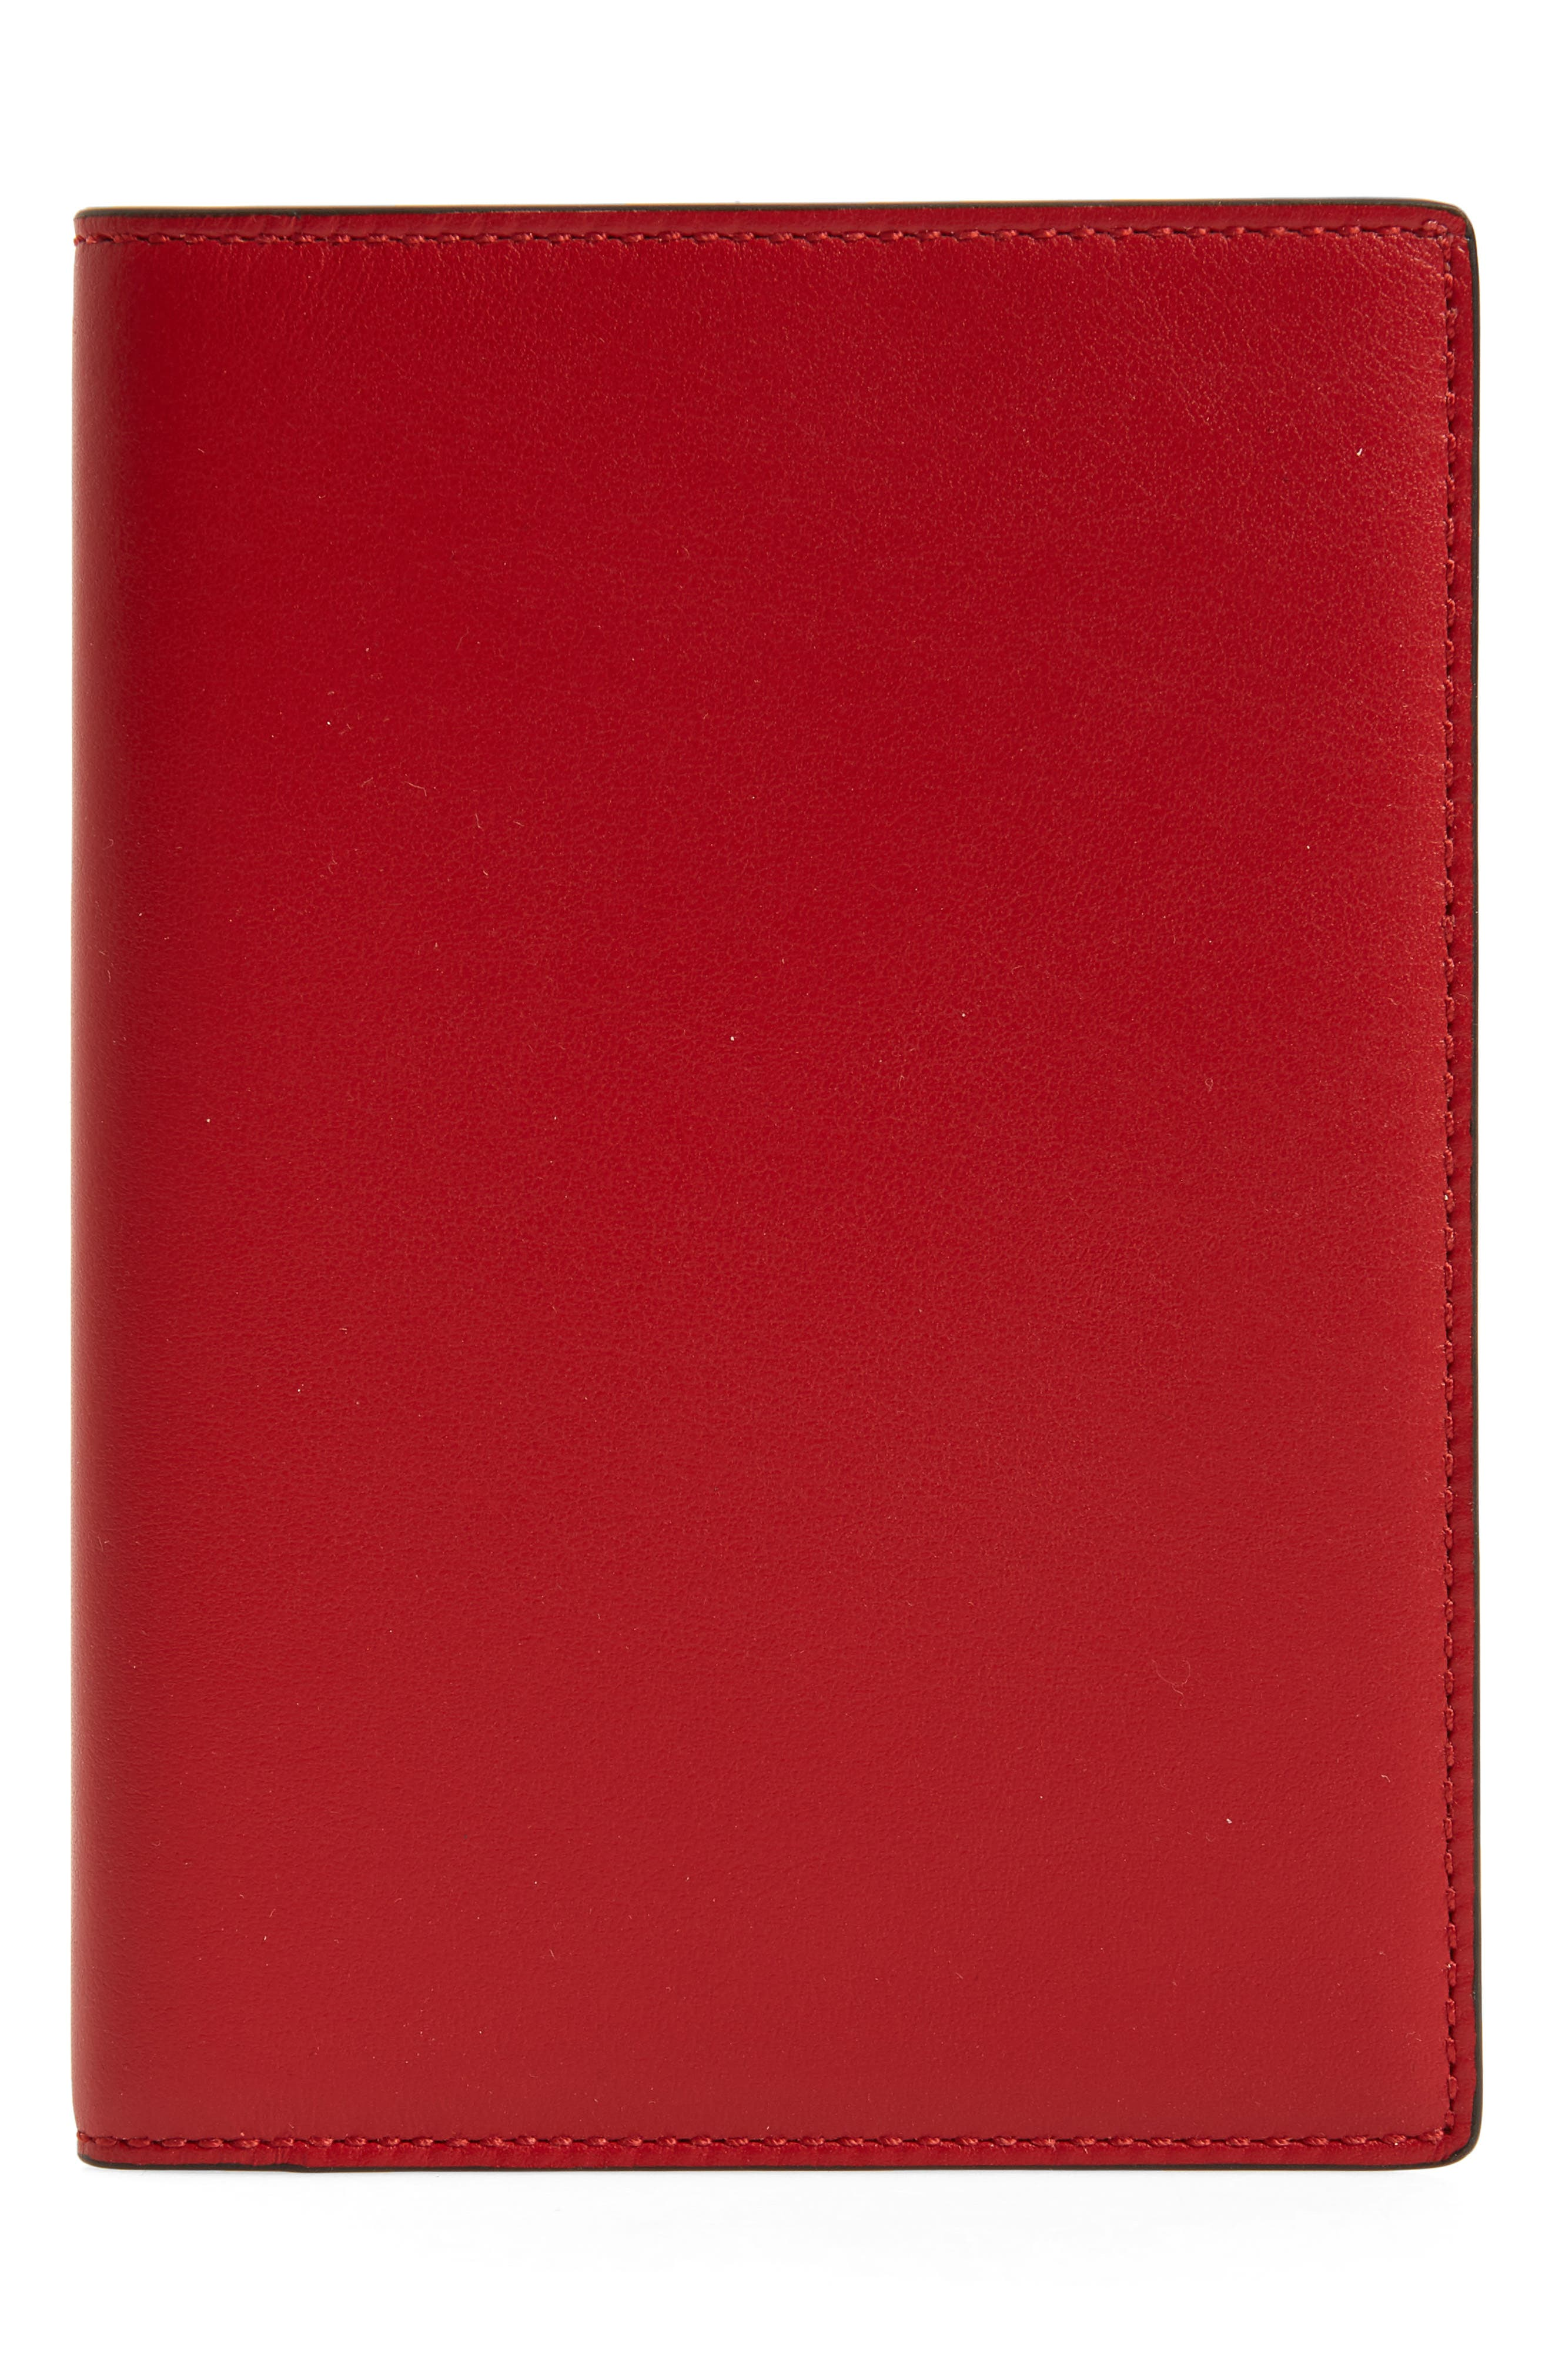 Hero Leather Passport Cover,                         Main,                         color, Red